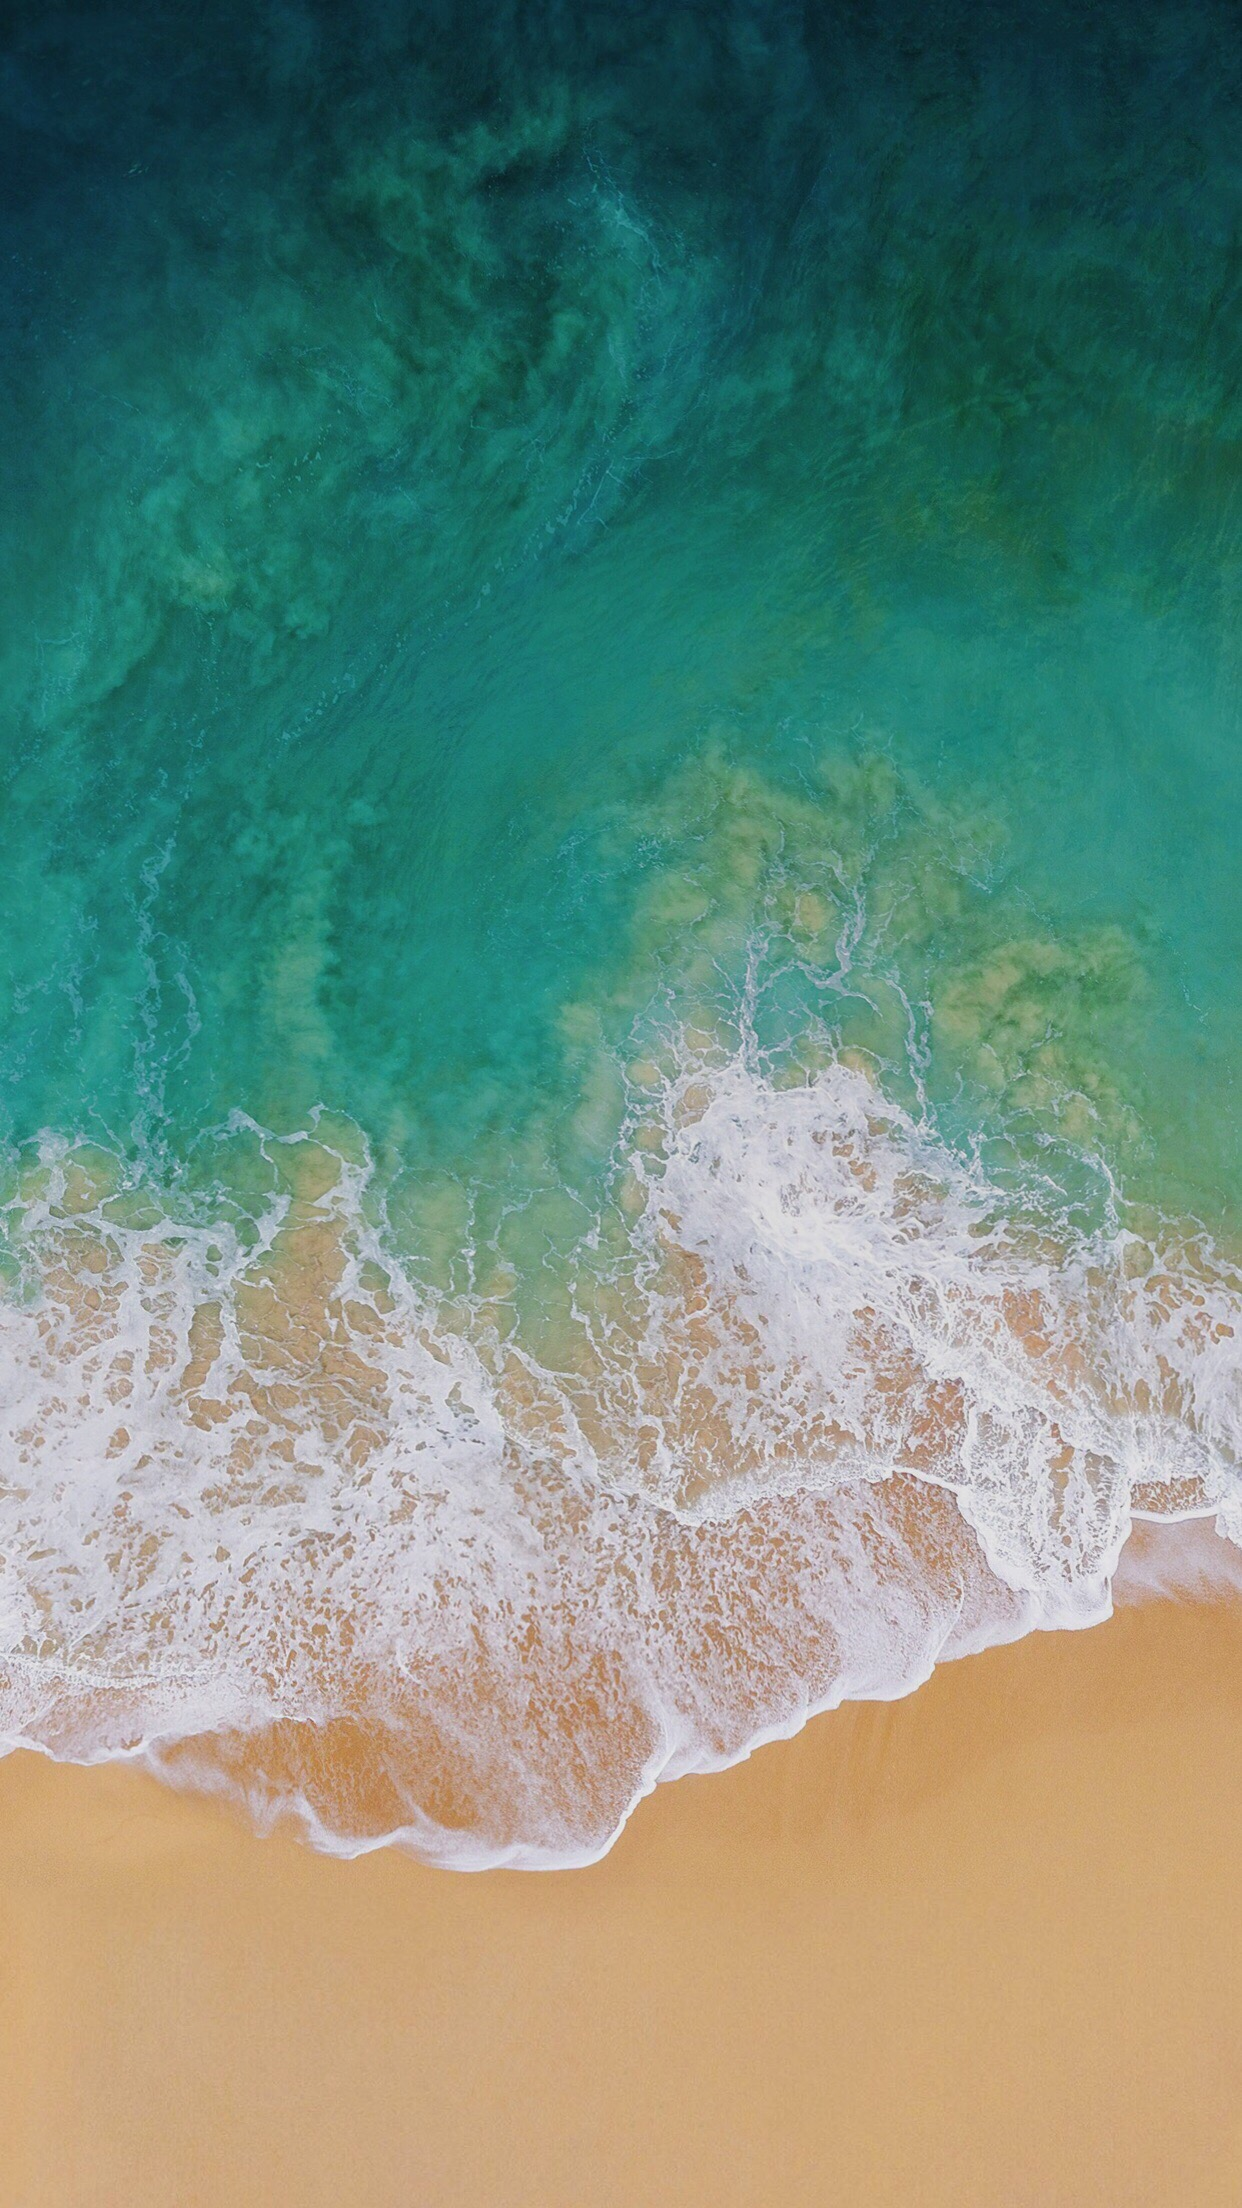 Official Apple IOS 11 iPhone wallpaper